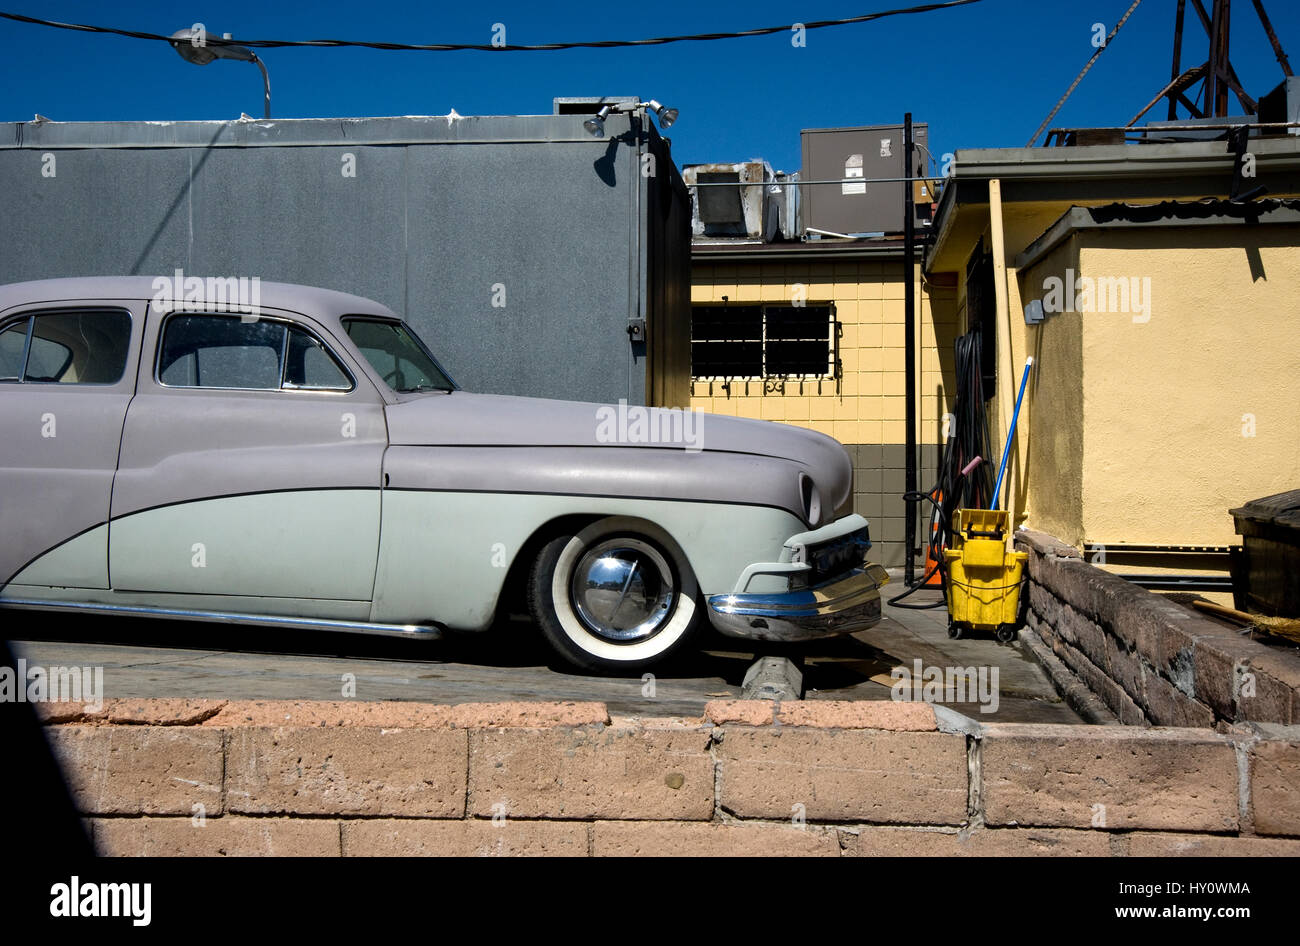 Parked car behind diner in Burbank - Stock Image